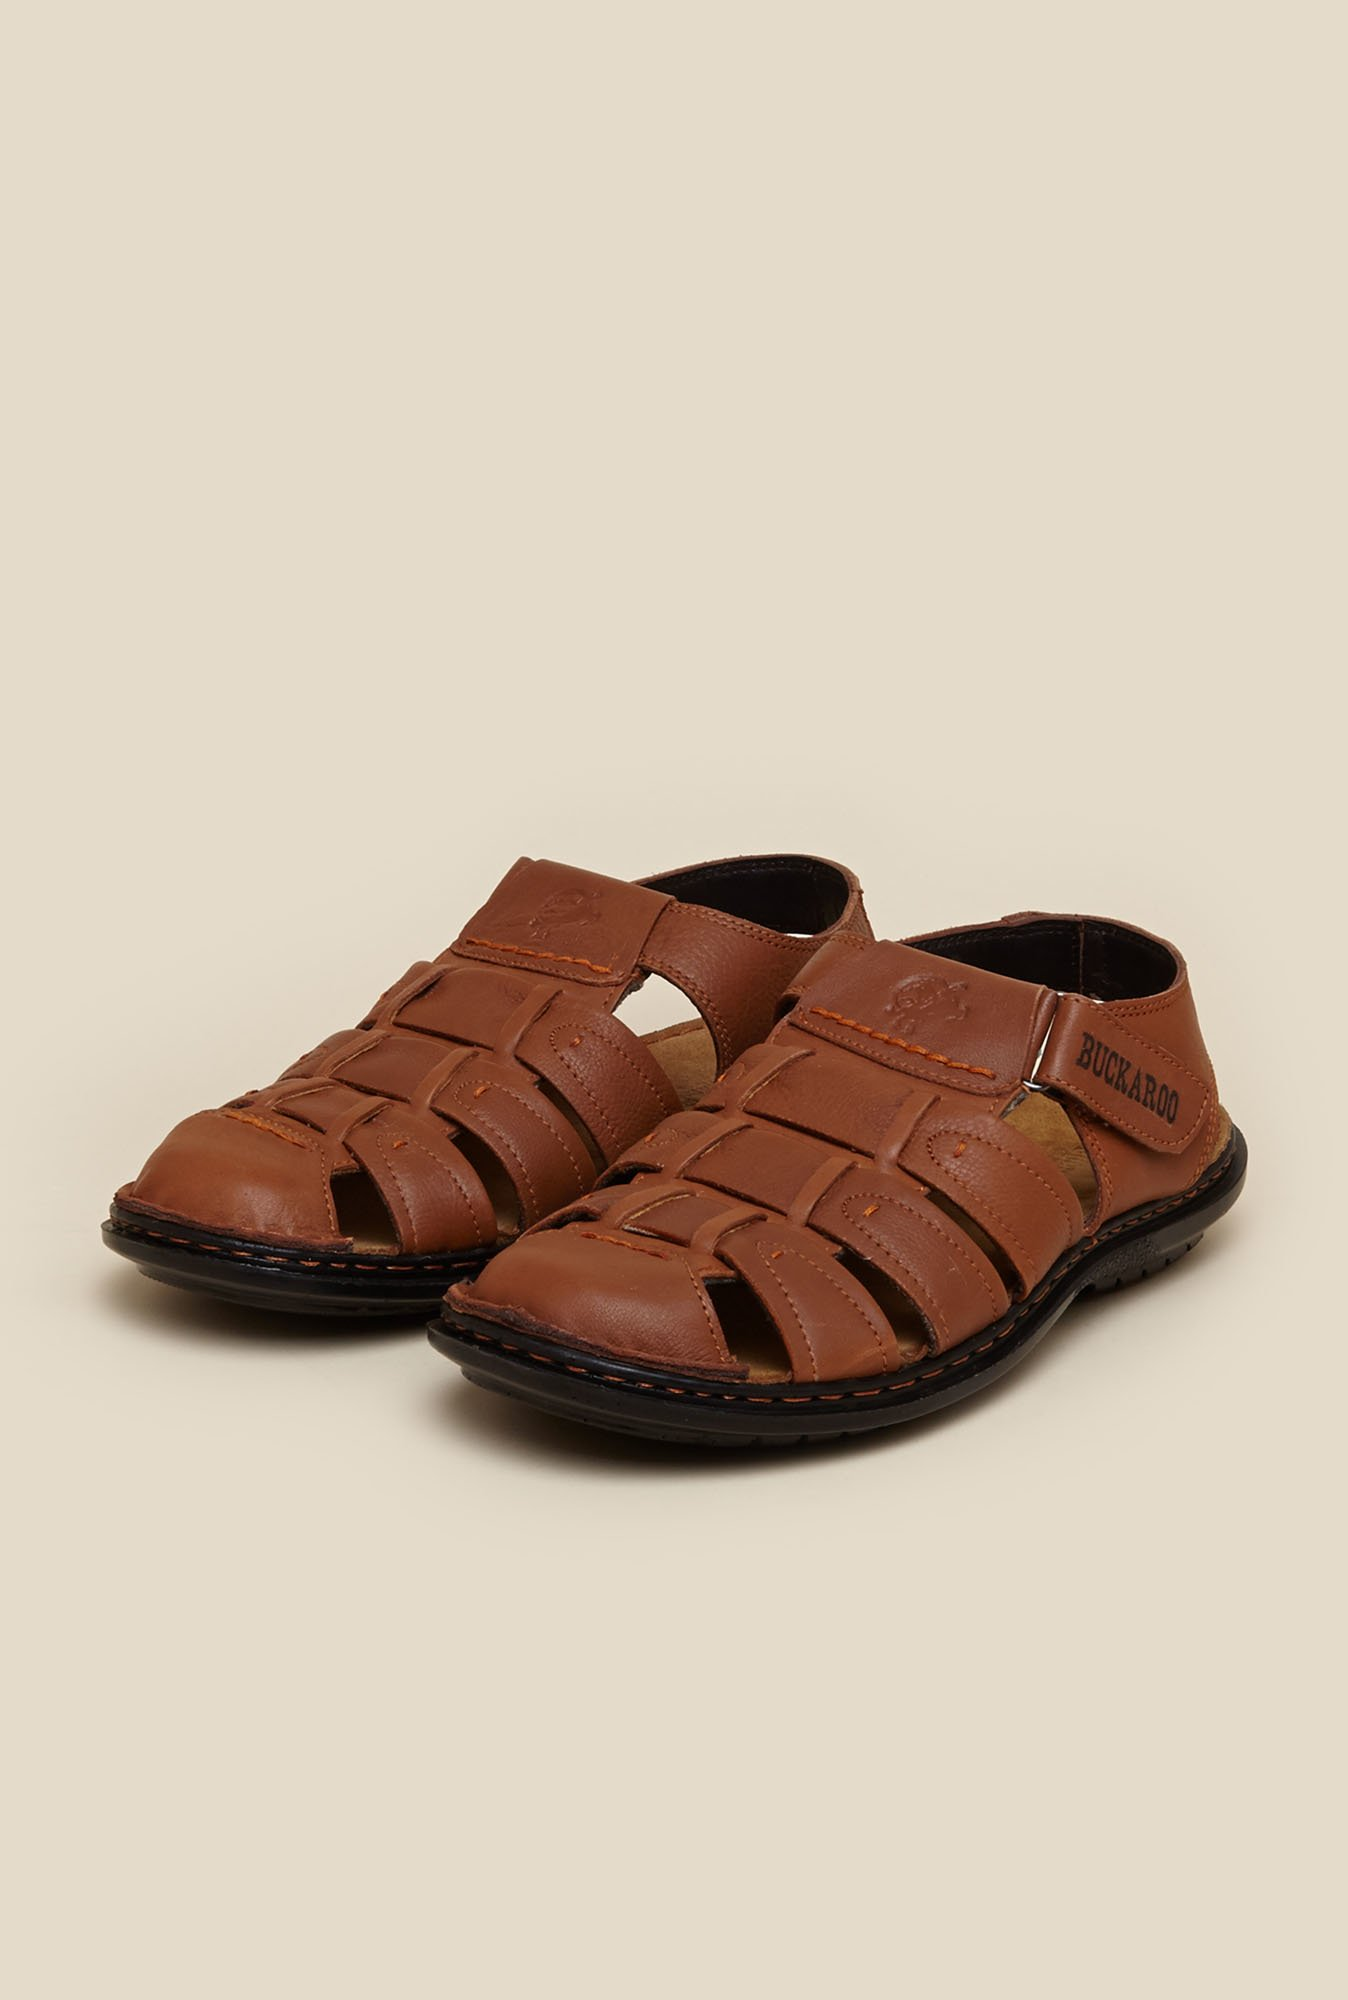 Buckaroo Solomon Tan Pull-up Leather Sandals